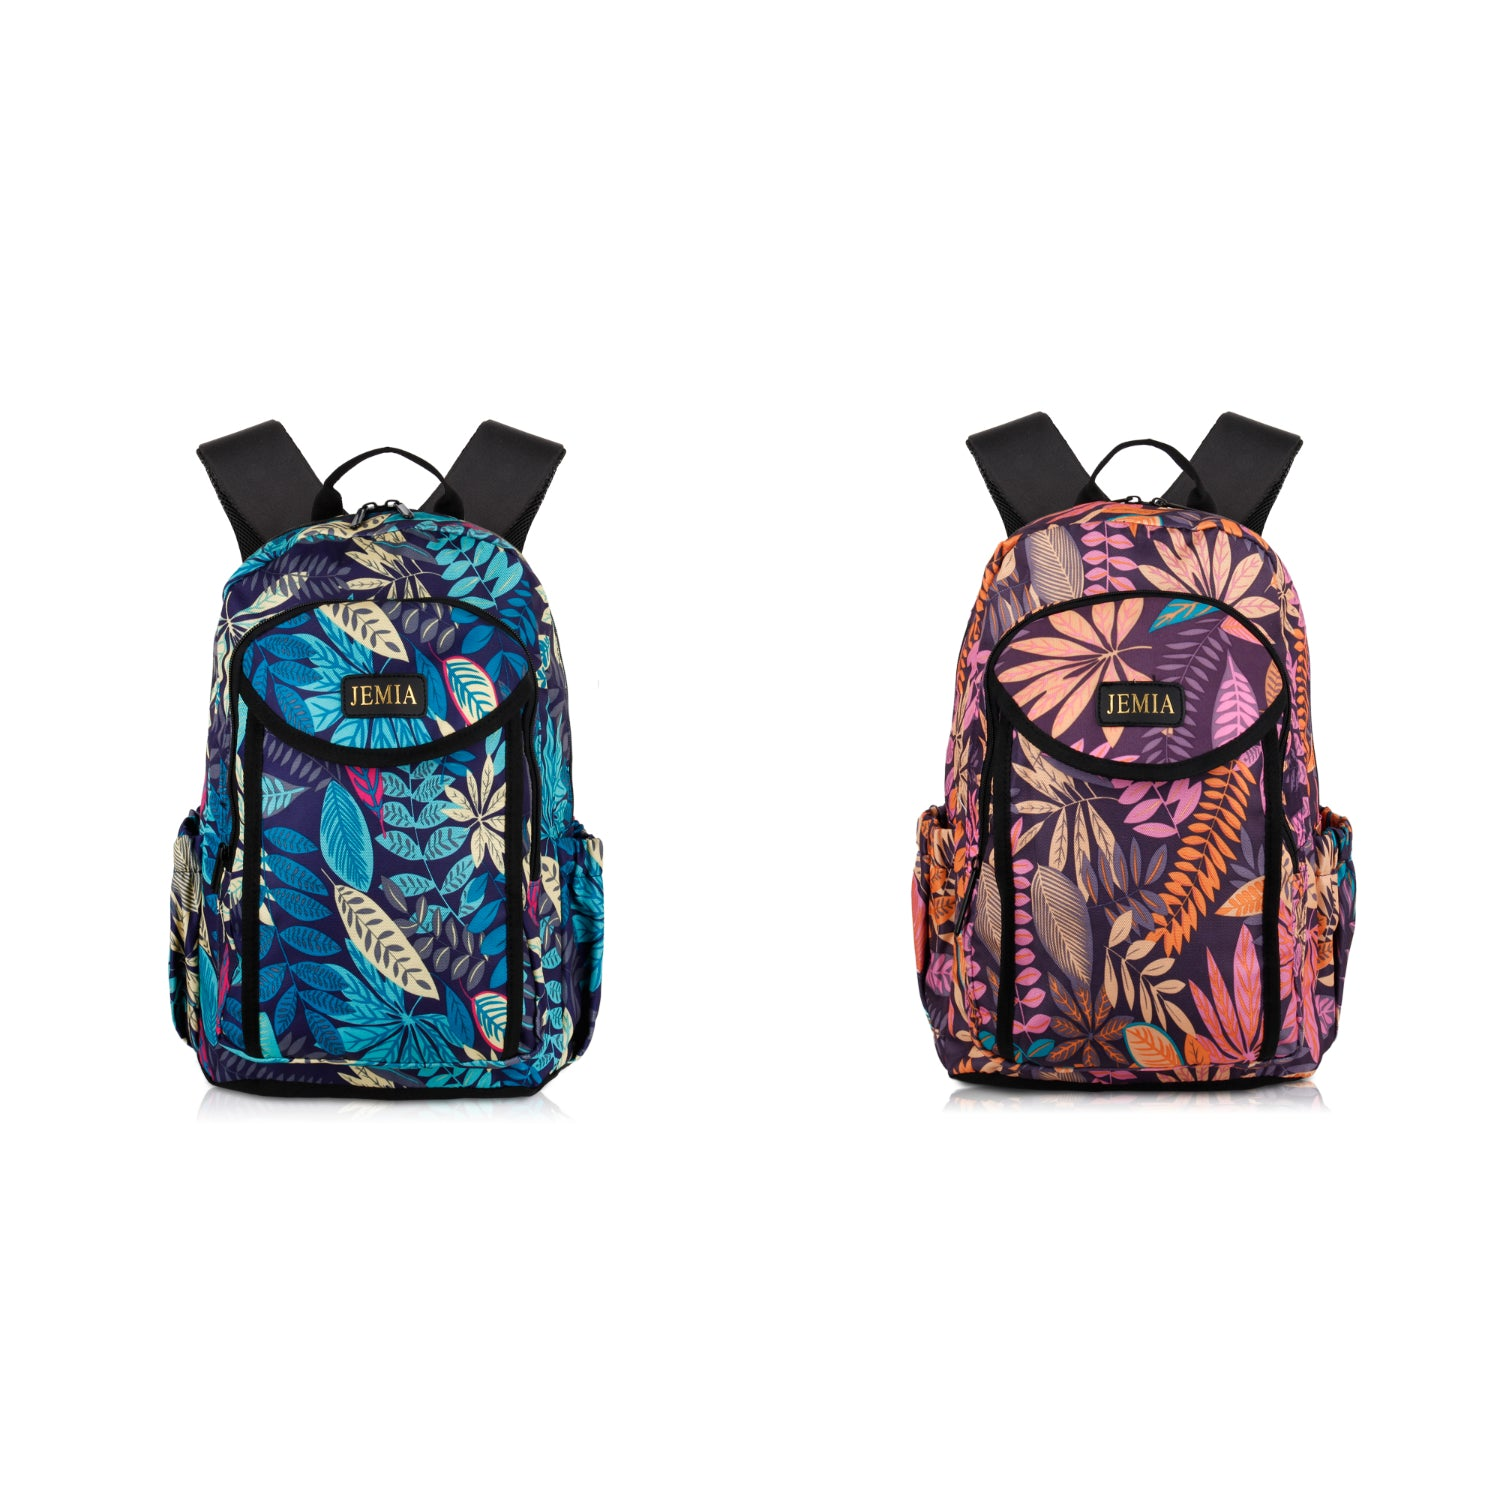 24 LITTERS MULTI COMPARTMENTS BACKPACK WITH LEAVES STYLE AND LAPTOP SLEEVE HOLDER